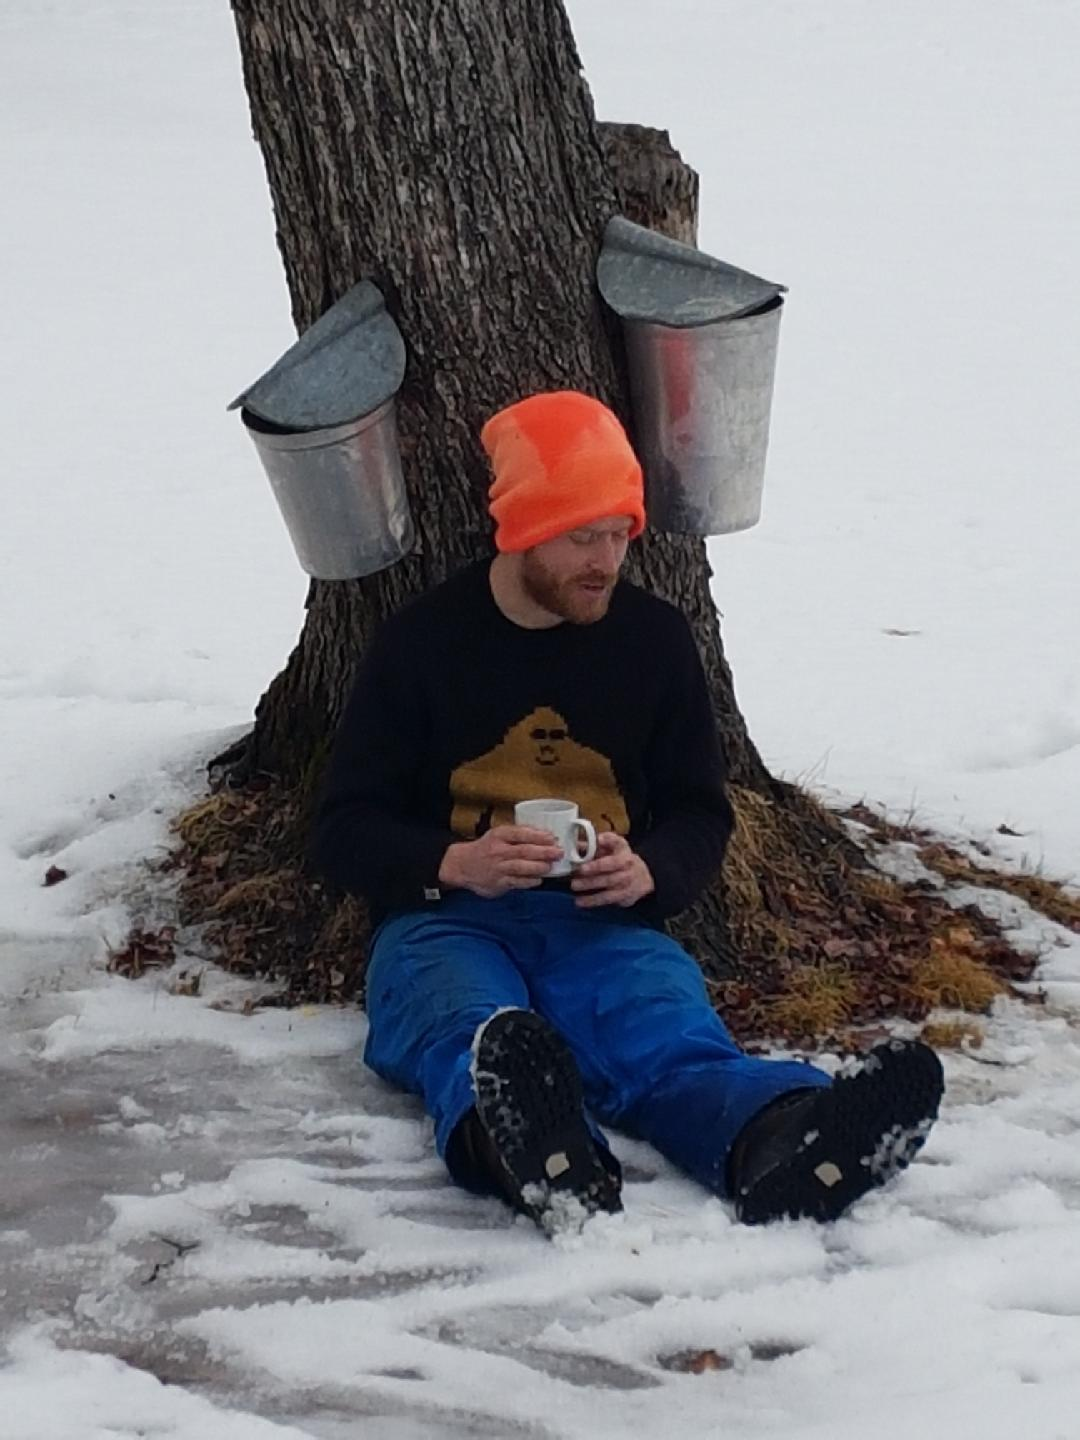 2. Collection - After you've tapped the trees and the sap is flowing, you've got to collect the sap. It either drips into buckets right on the tree (the classic), or flows downhill via tubing.